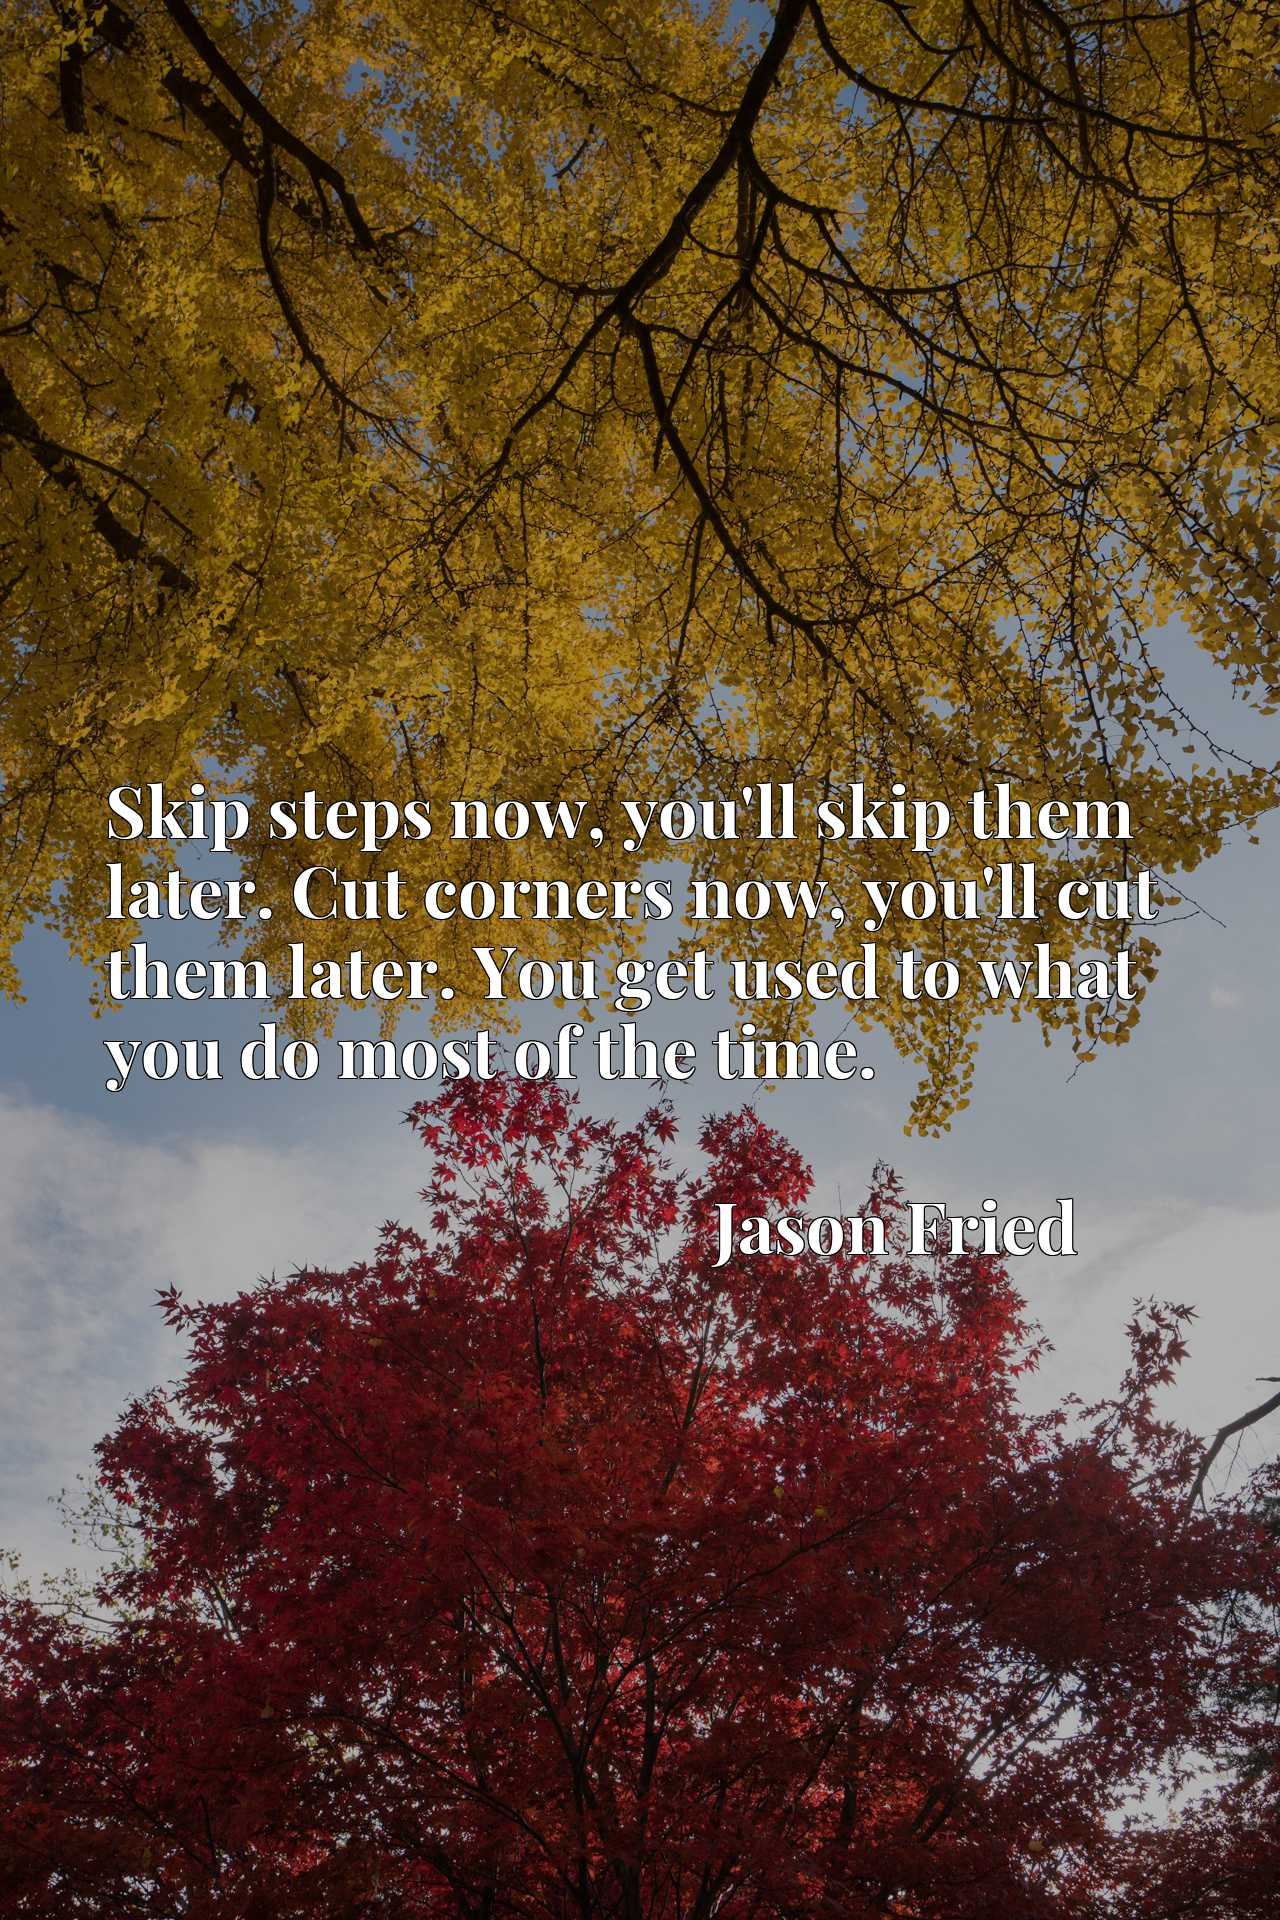 Skip steps now, you'll skip them later. Cut corners now, you'll cut them later. You get used to what you do most of the time.